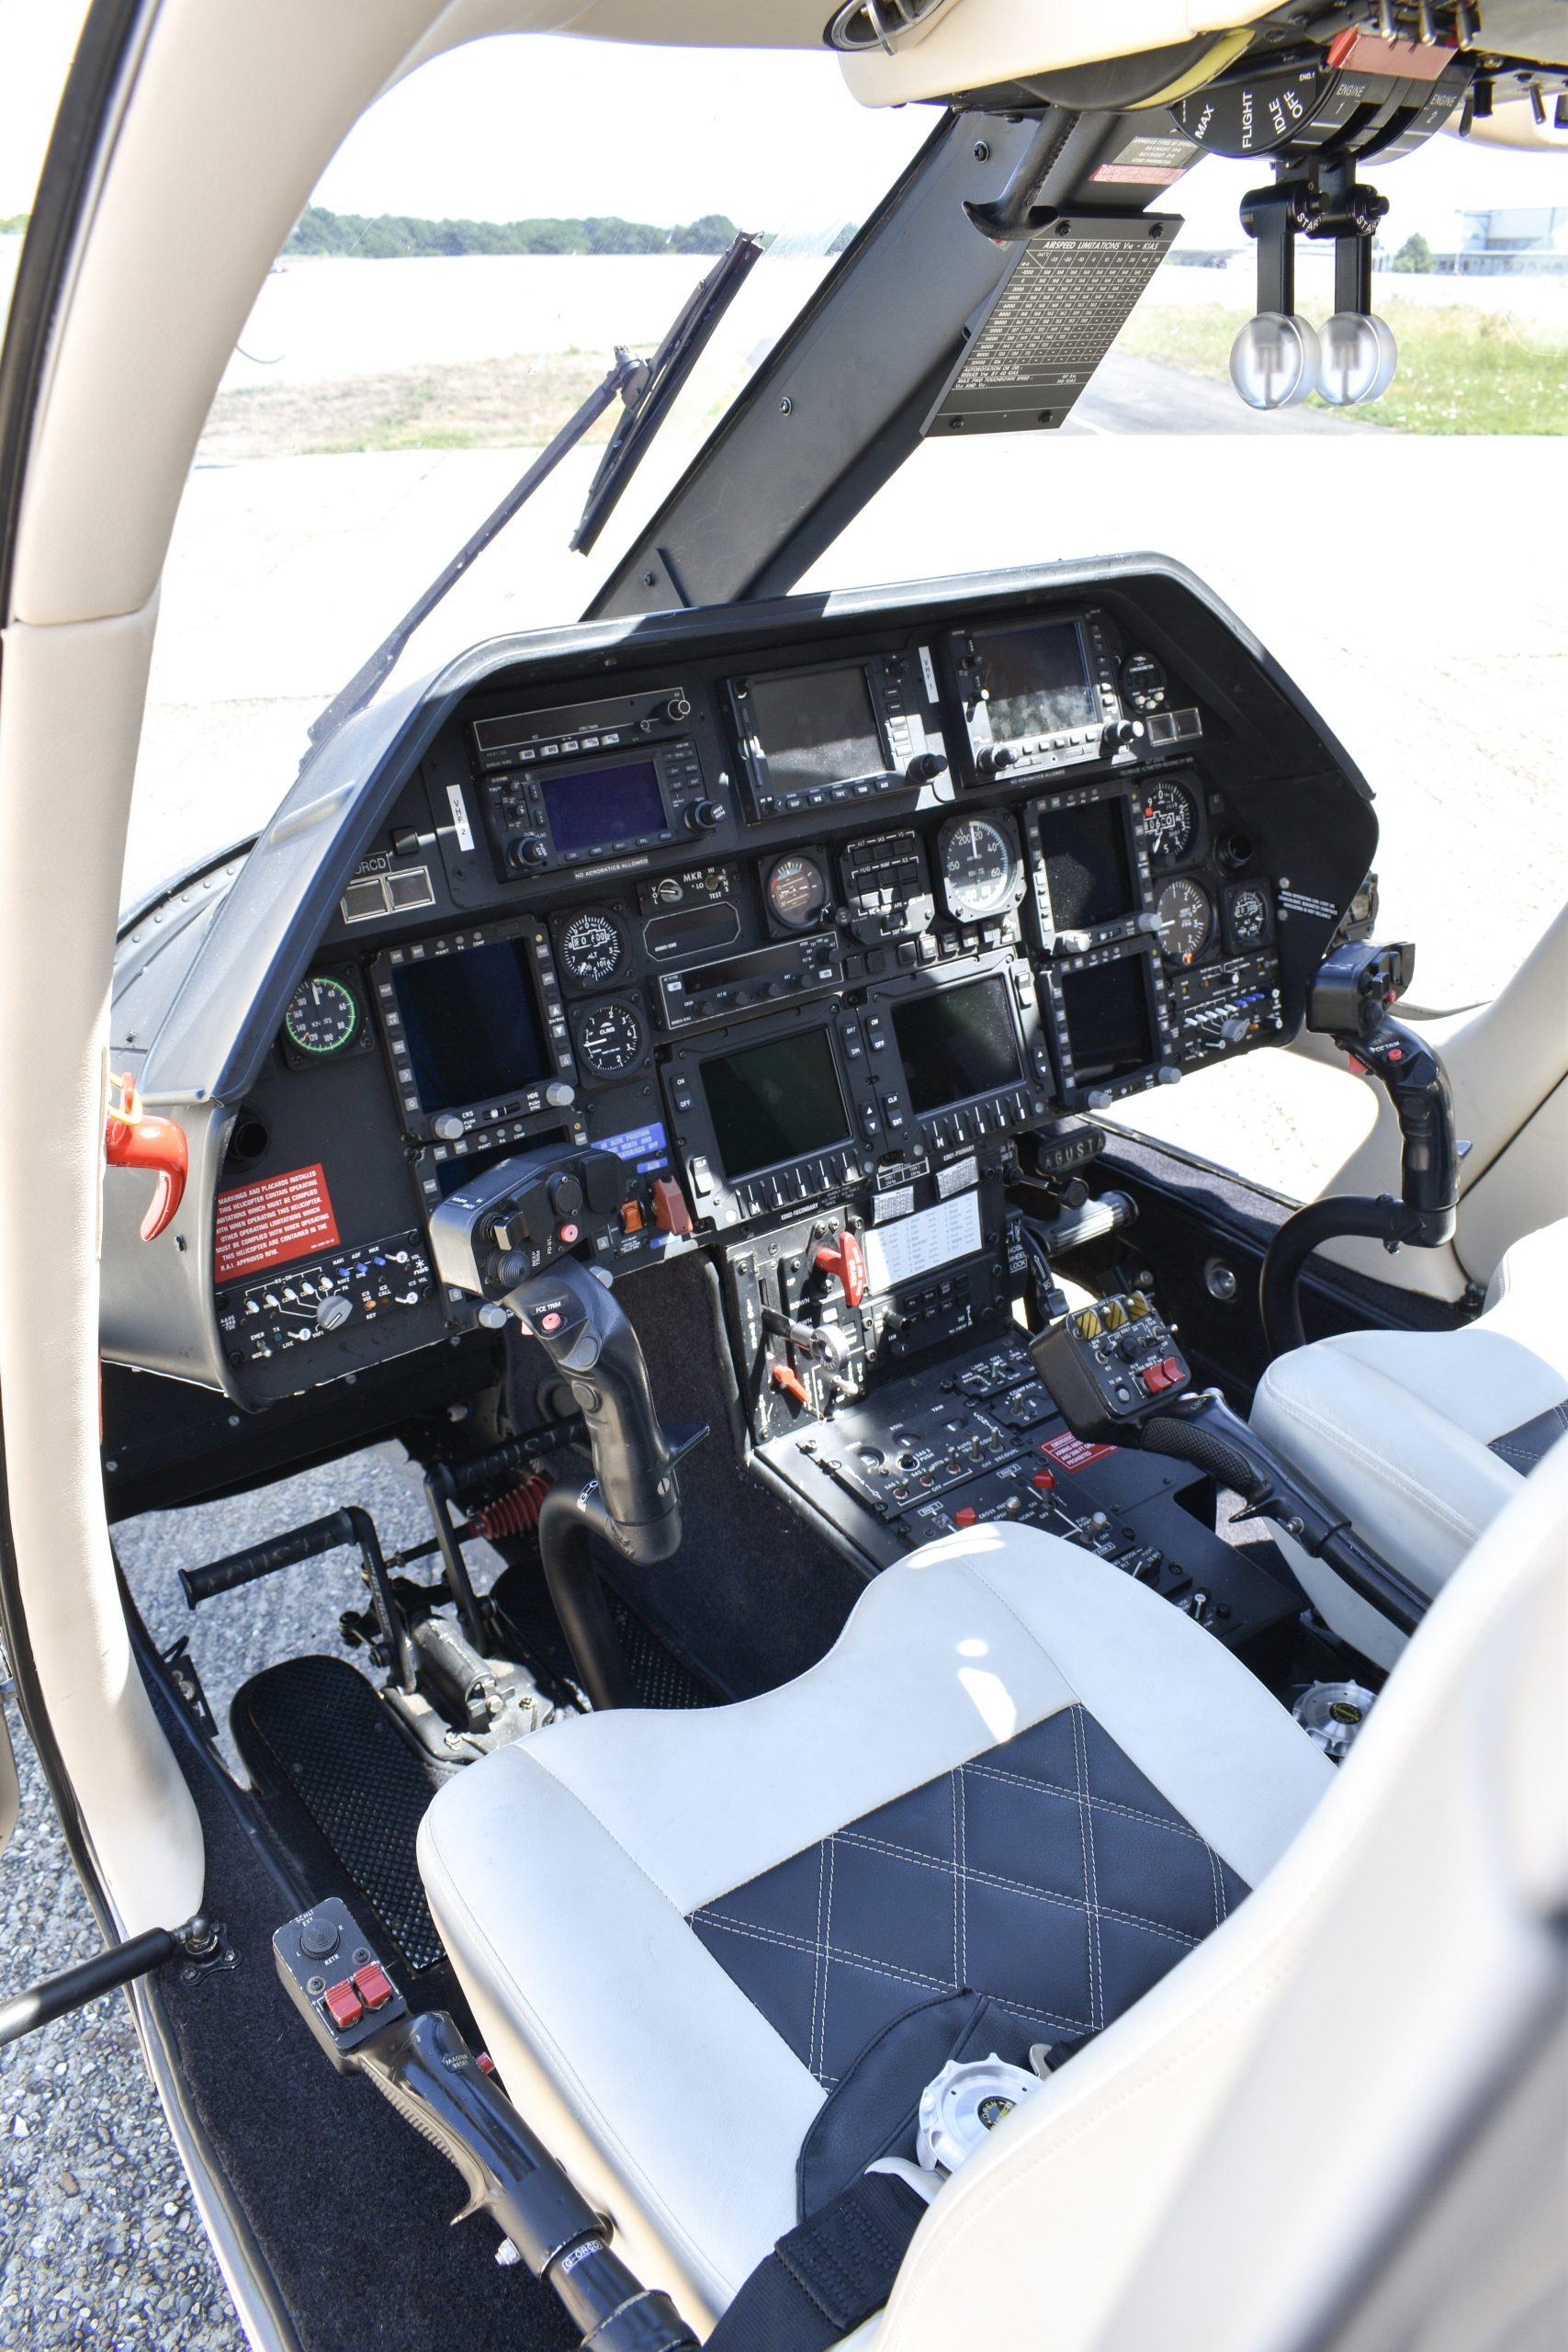 grounded helicopter showing cockpit